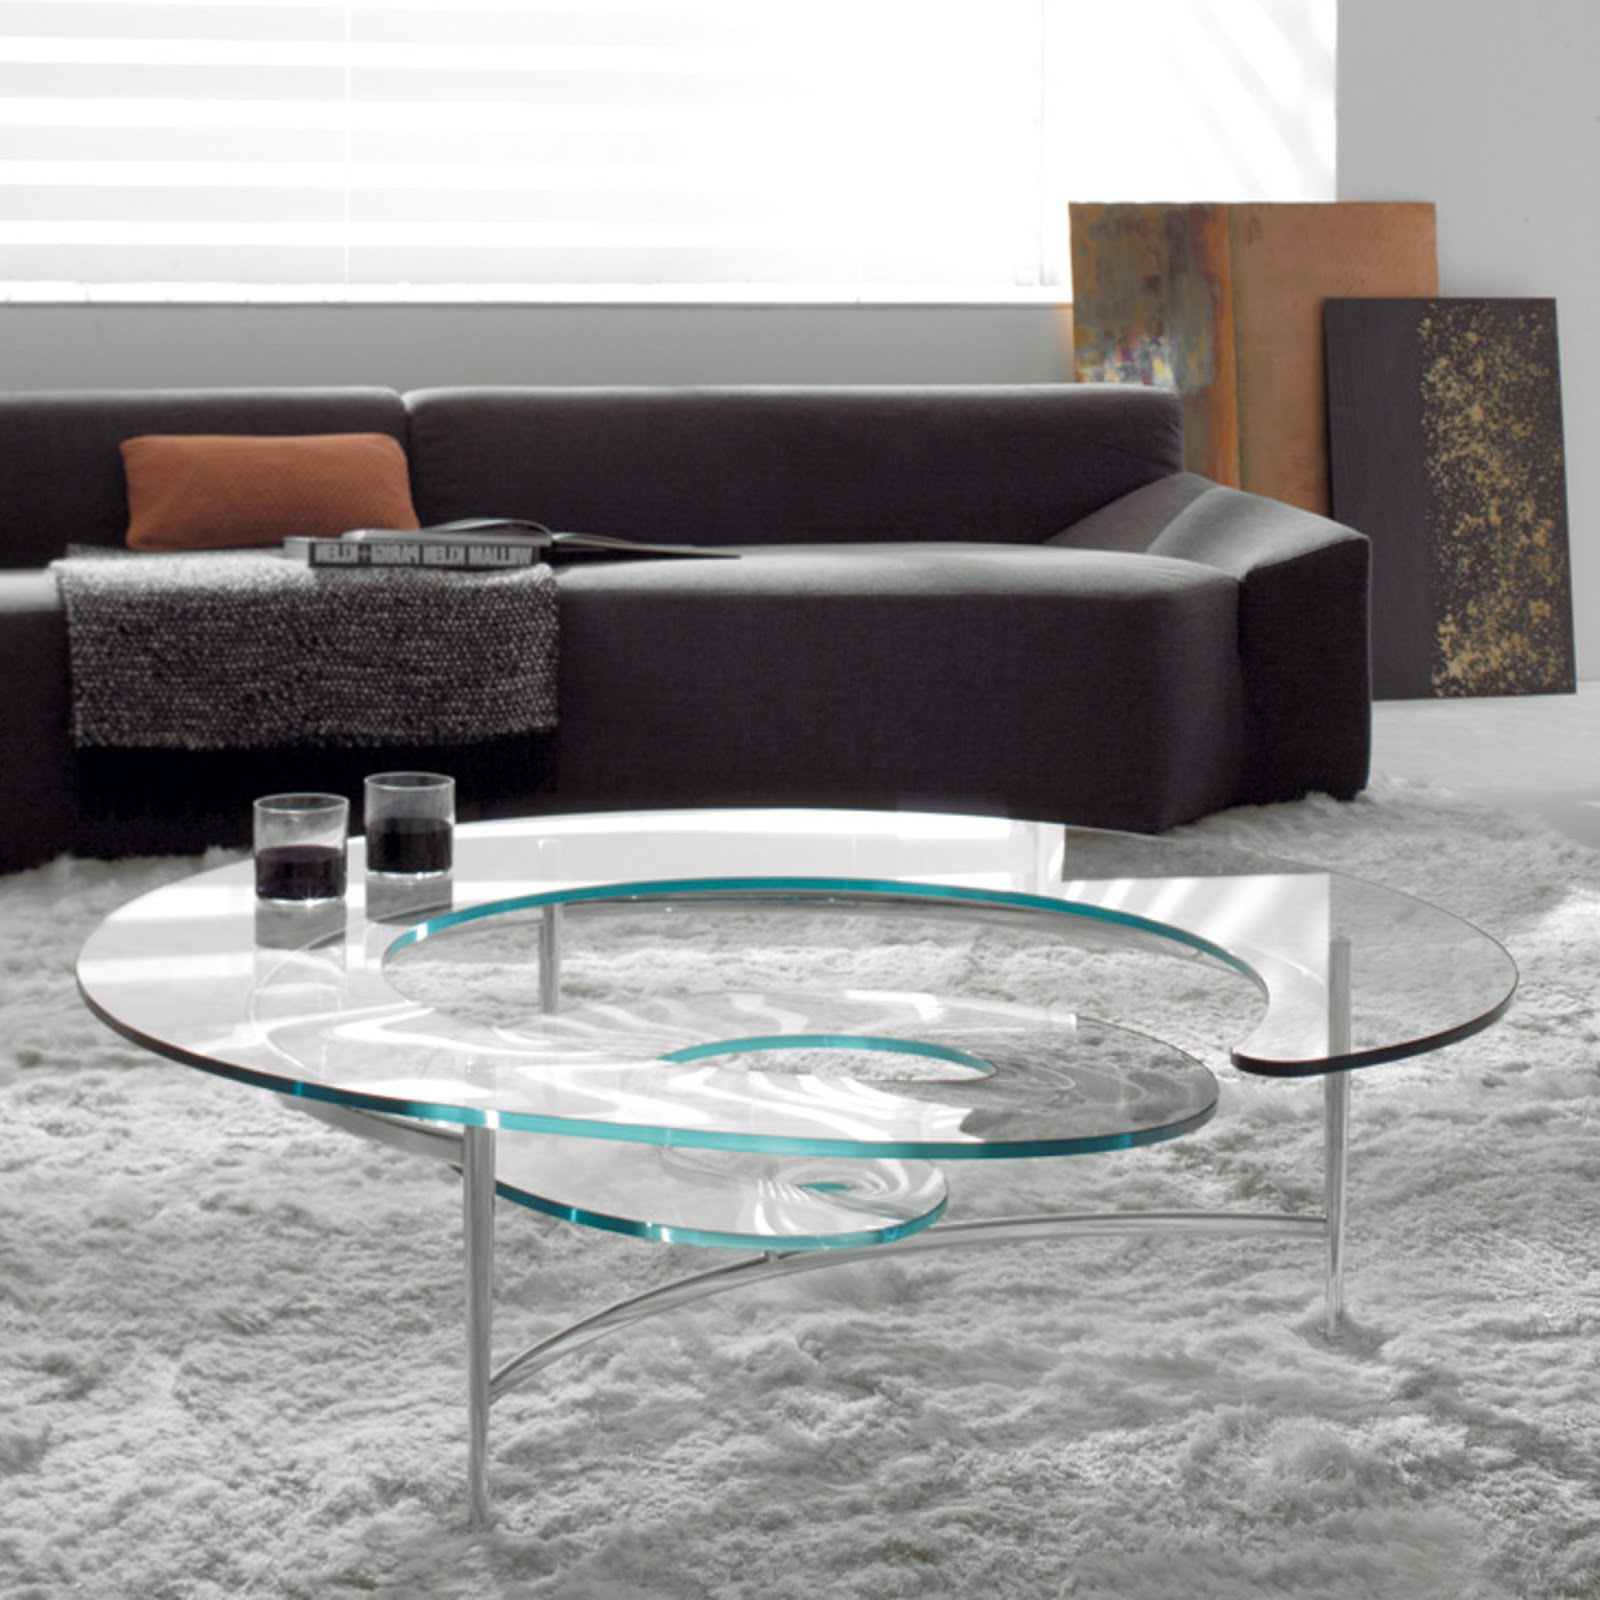 Table basse design en verre spirale mobilier de luxe idkrea collection - Table basse luxe design ...